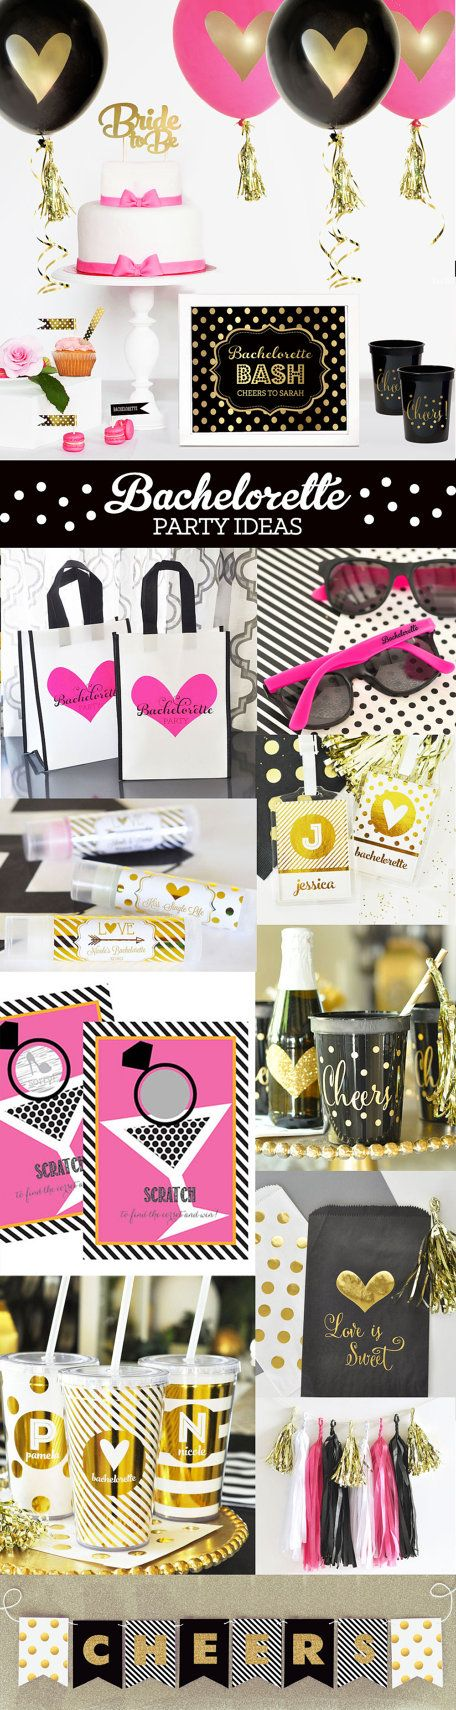 Bachelorette Party Ideas And Decorations For A Black Gold By Mod